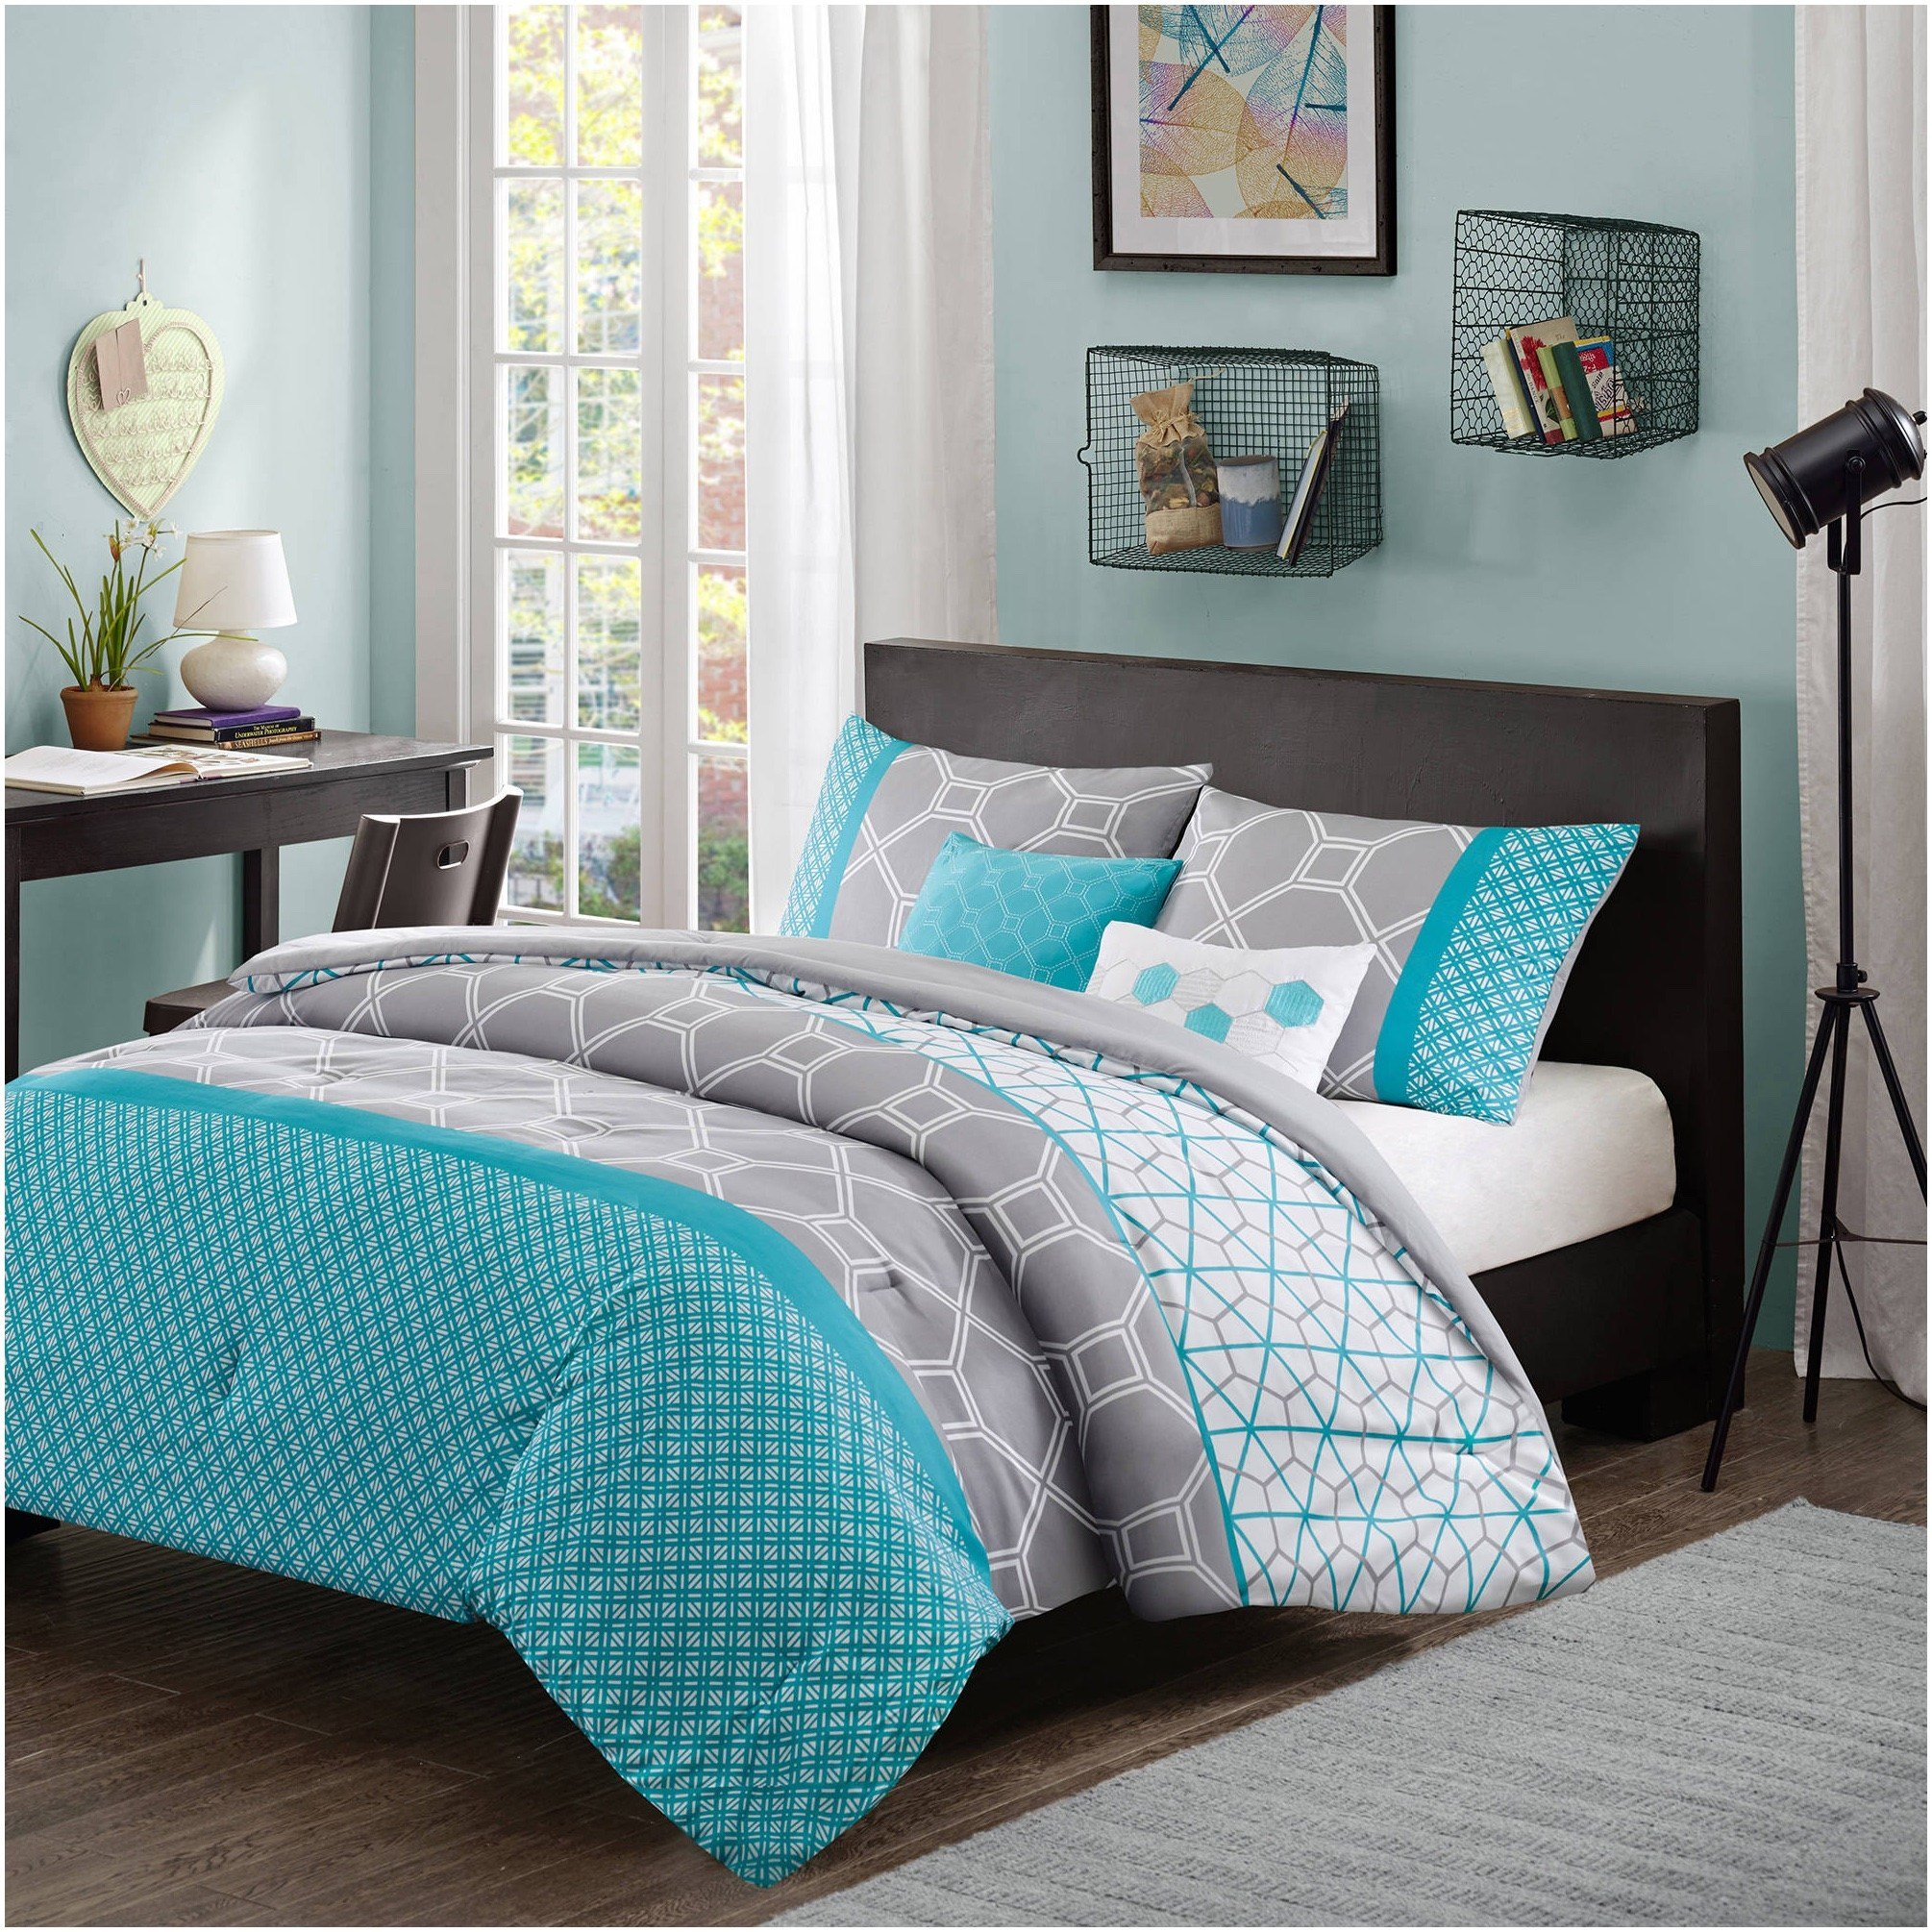 Best Cream And Teal Bedroom White Gold Room Theme Gold Room With Pictures